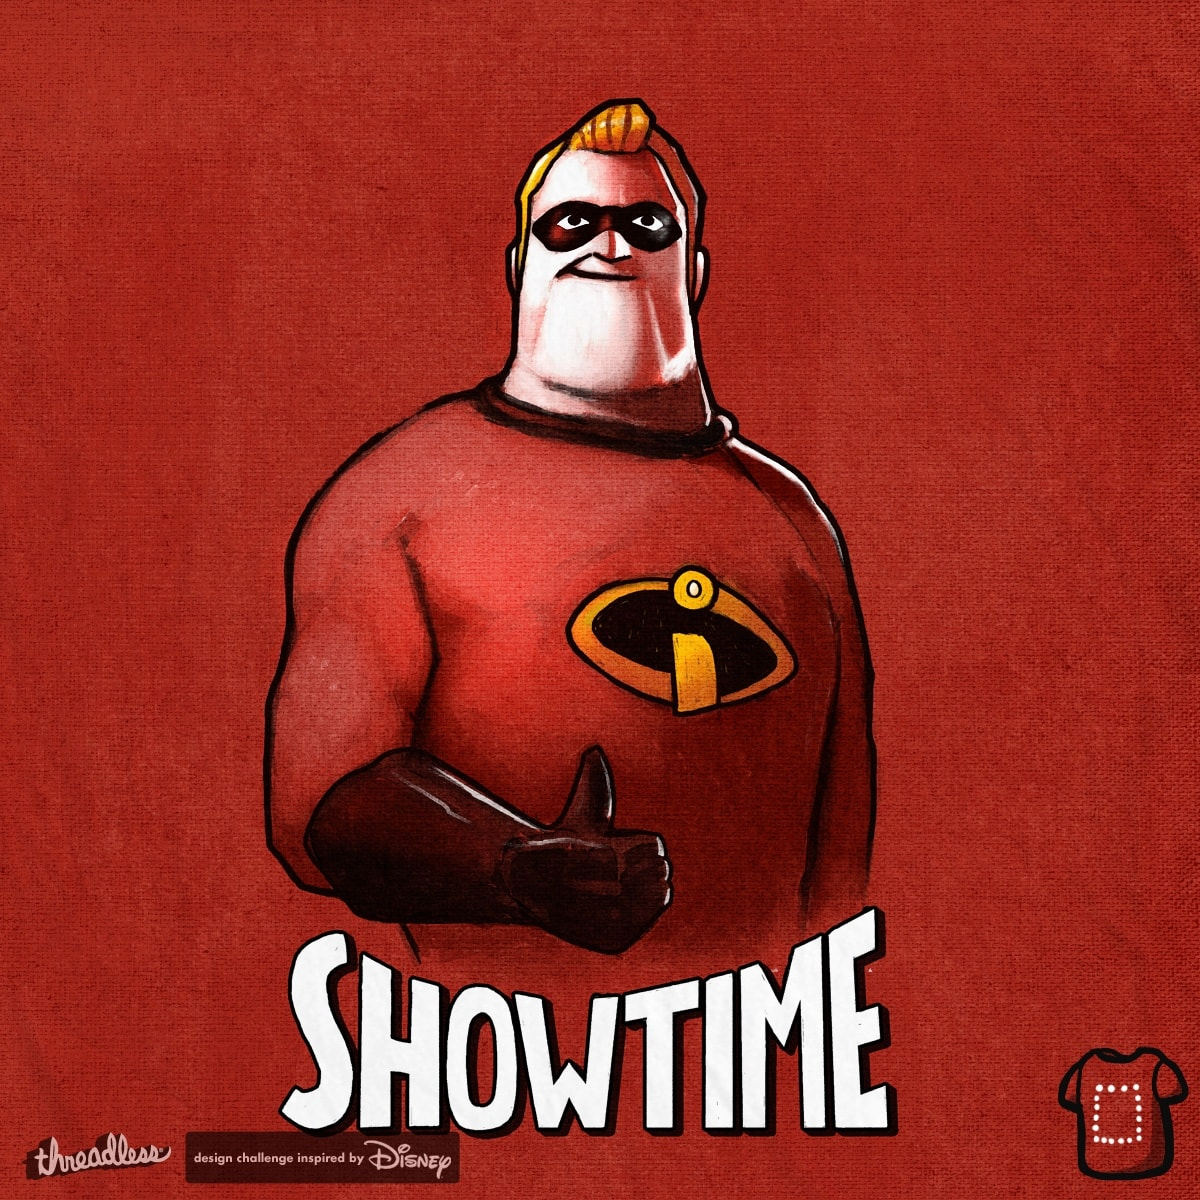 Showtime! by RonanL on Threadless